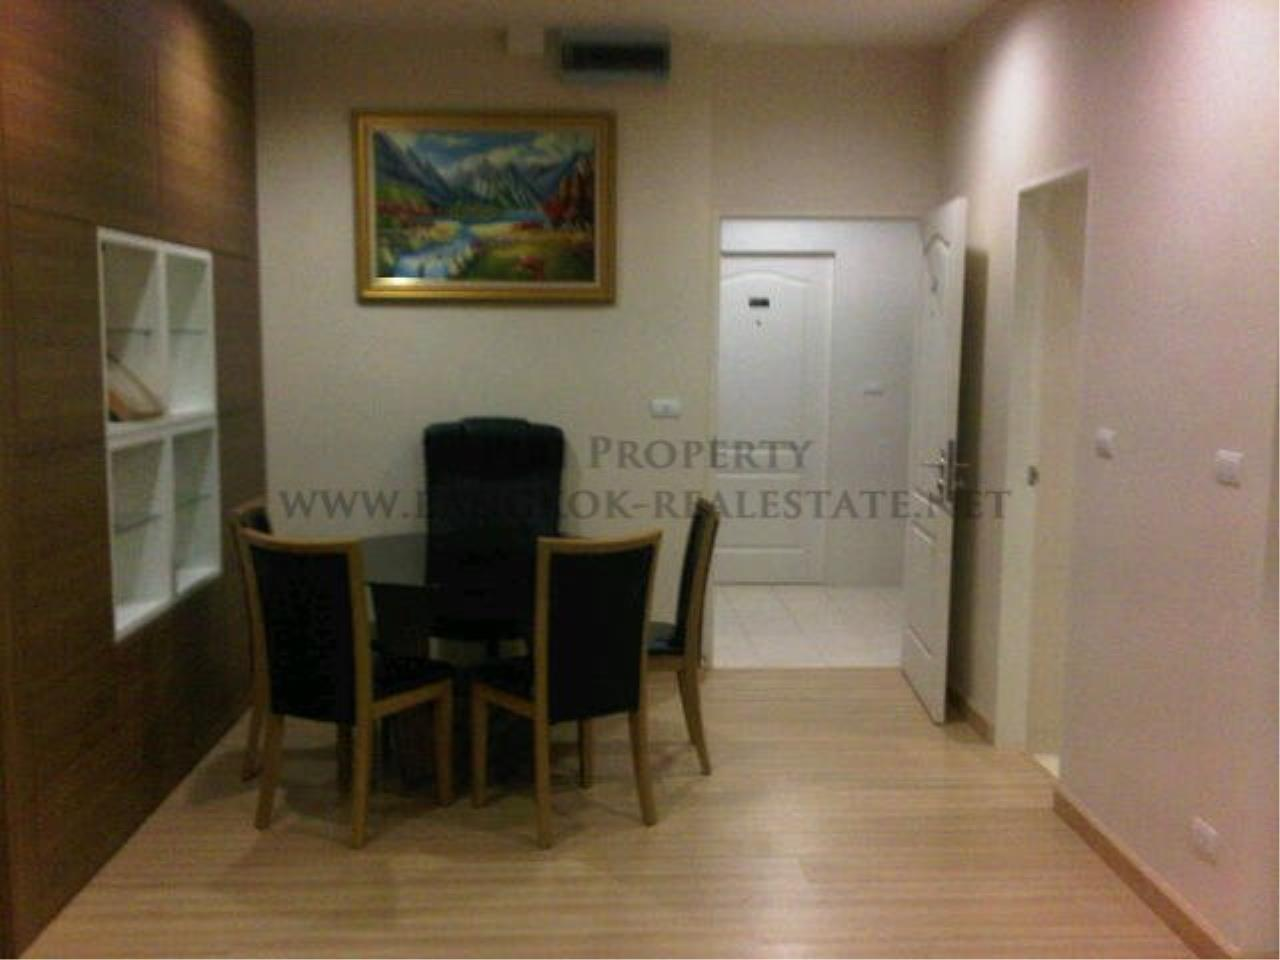 Piri Property Agency's 2 Bedroom Condo in the Lighthouse Condominium for sale - 27th Floor 3